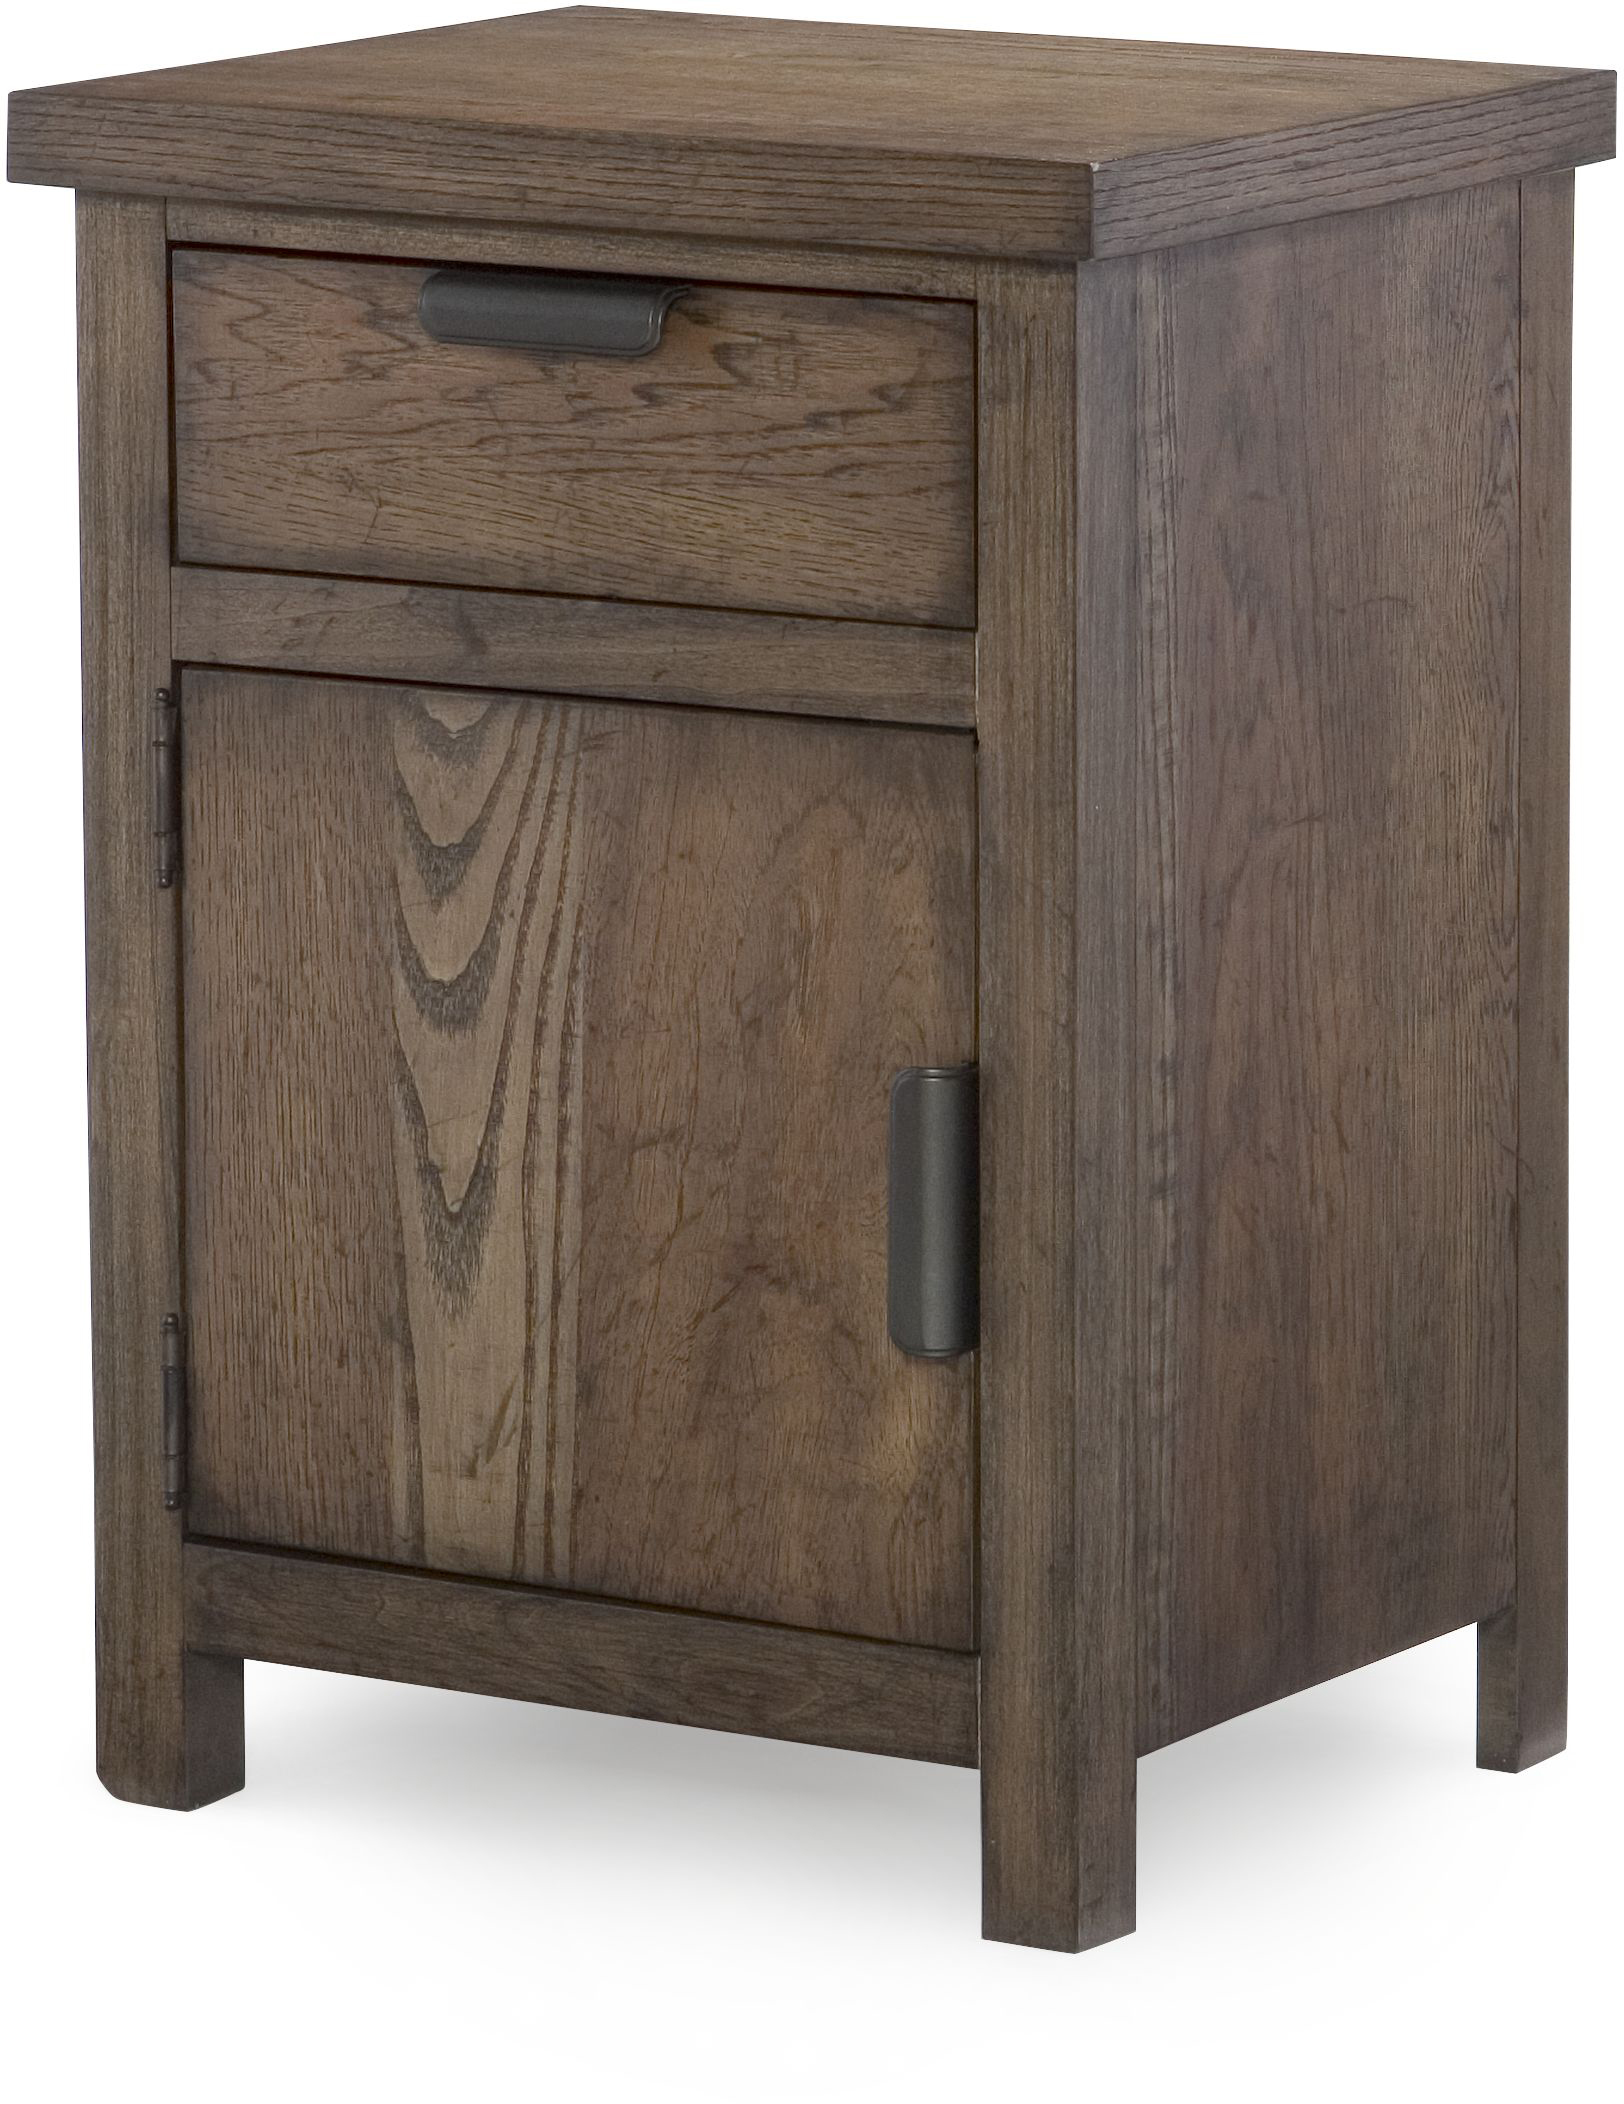 Legacy Classic Kids Fulton County Night Stand  - Item Number: 5900-3100